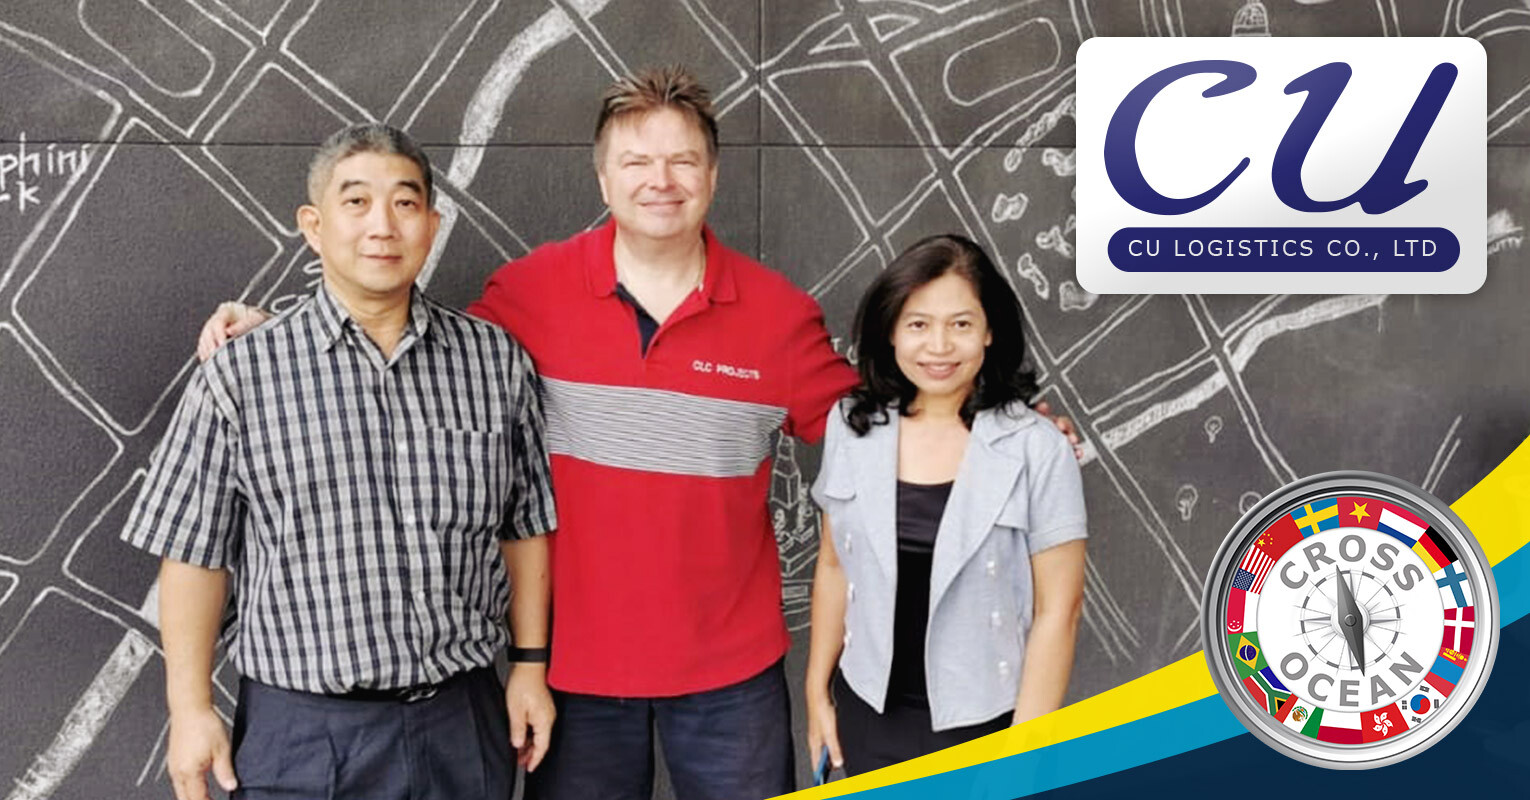 Cross Ocean met with CU Logistics in Bangkok, Thailand